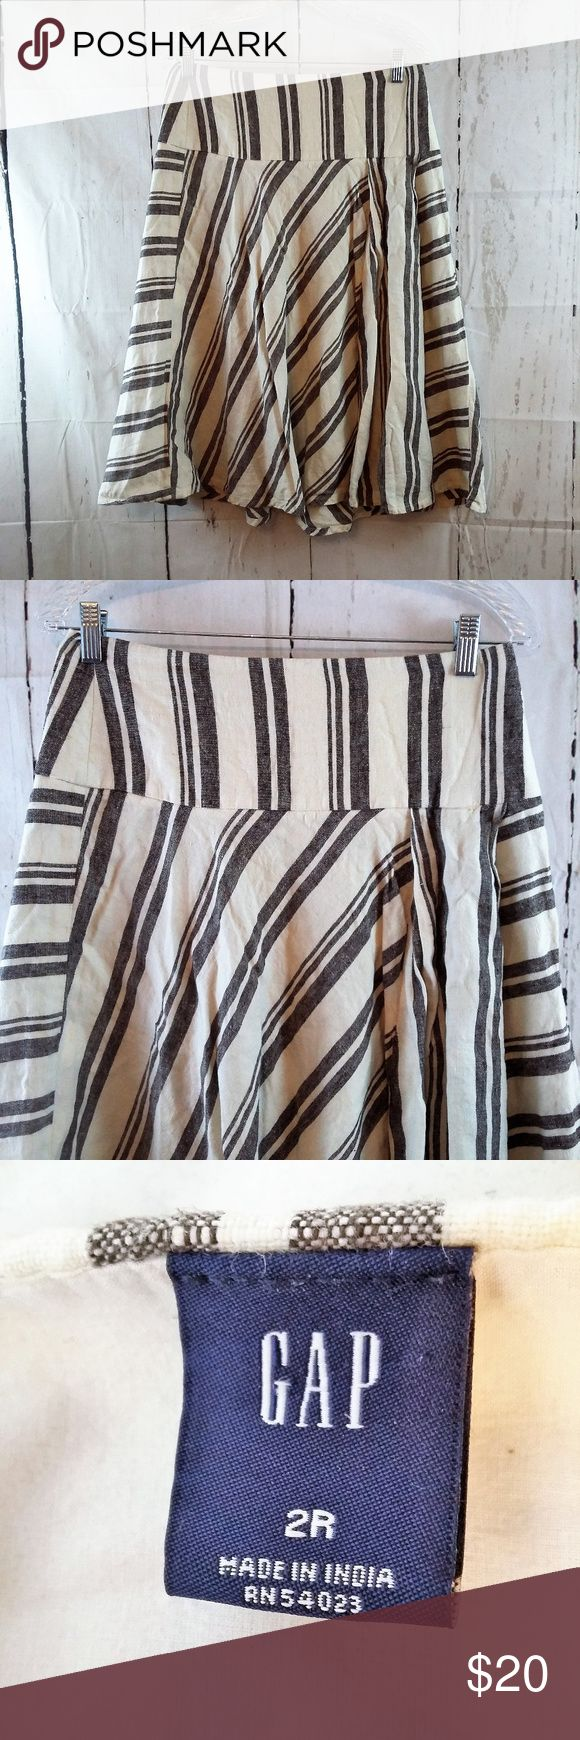 """Gap Size 2R Gray White Striped 100% Linen Skirt Gently used, clean and in good pre-owned condition.  Waist = 15"""" (hip - hip - across the front) Length = 26.5"""" (hip to hem) Material: 100% Linen Features: A-line, hidden side zip, thick, flowy  No trades or modeling of clothing, jewelry, shoes or accessories.  If additional measurements are required to ensure the perfect fit for you, I will gladly provide them. All items are from a smoke-free/pet-free home. GAP Skirts"""